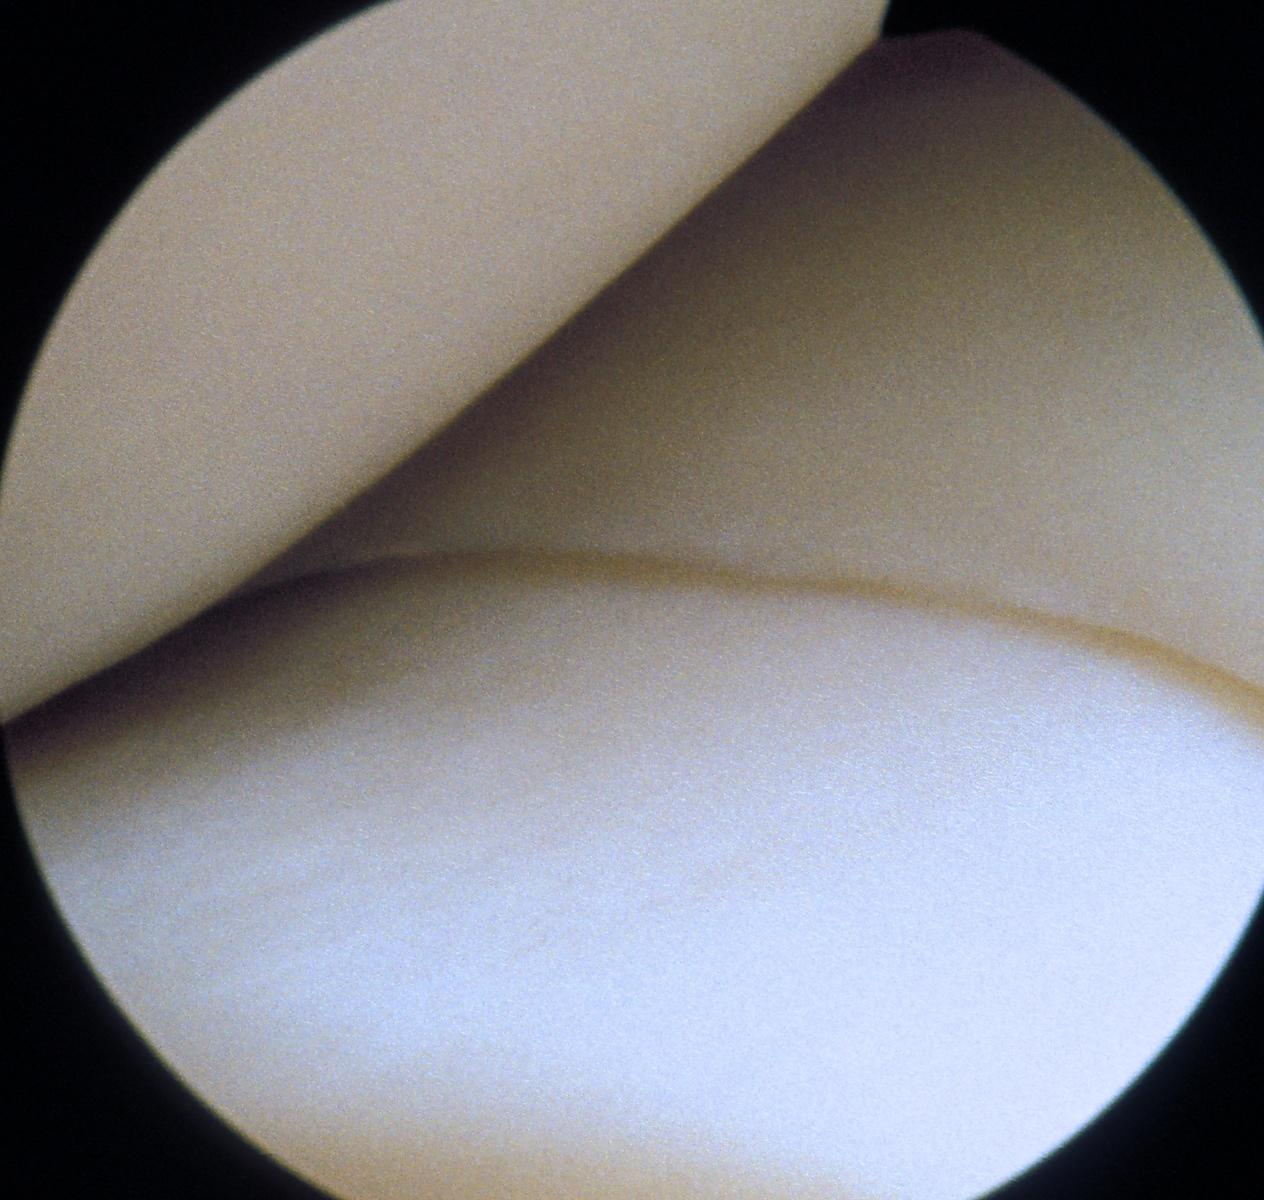 Clean knee showing femoral condyle, meniscus and tibial plateau